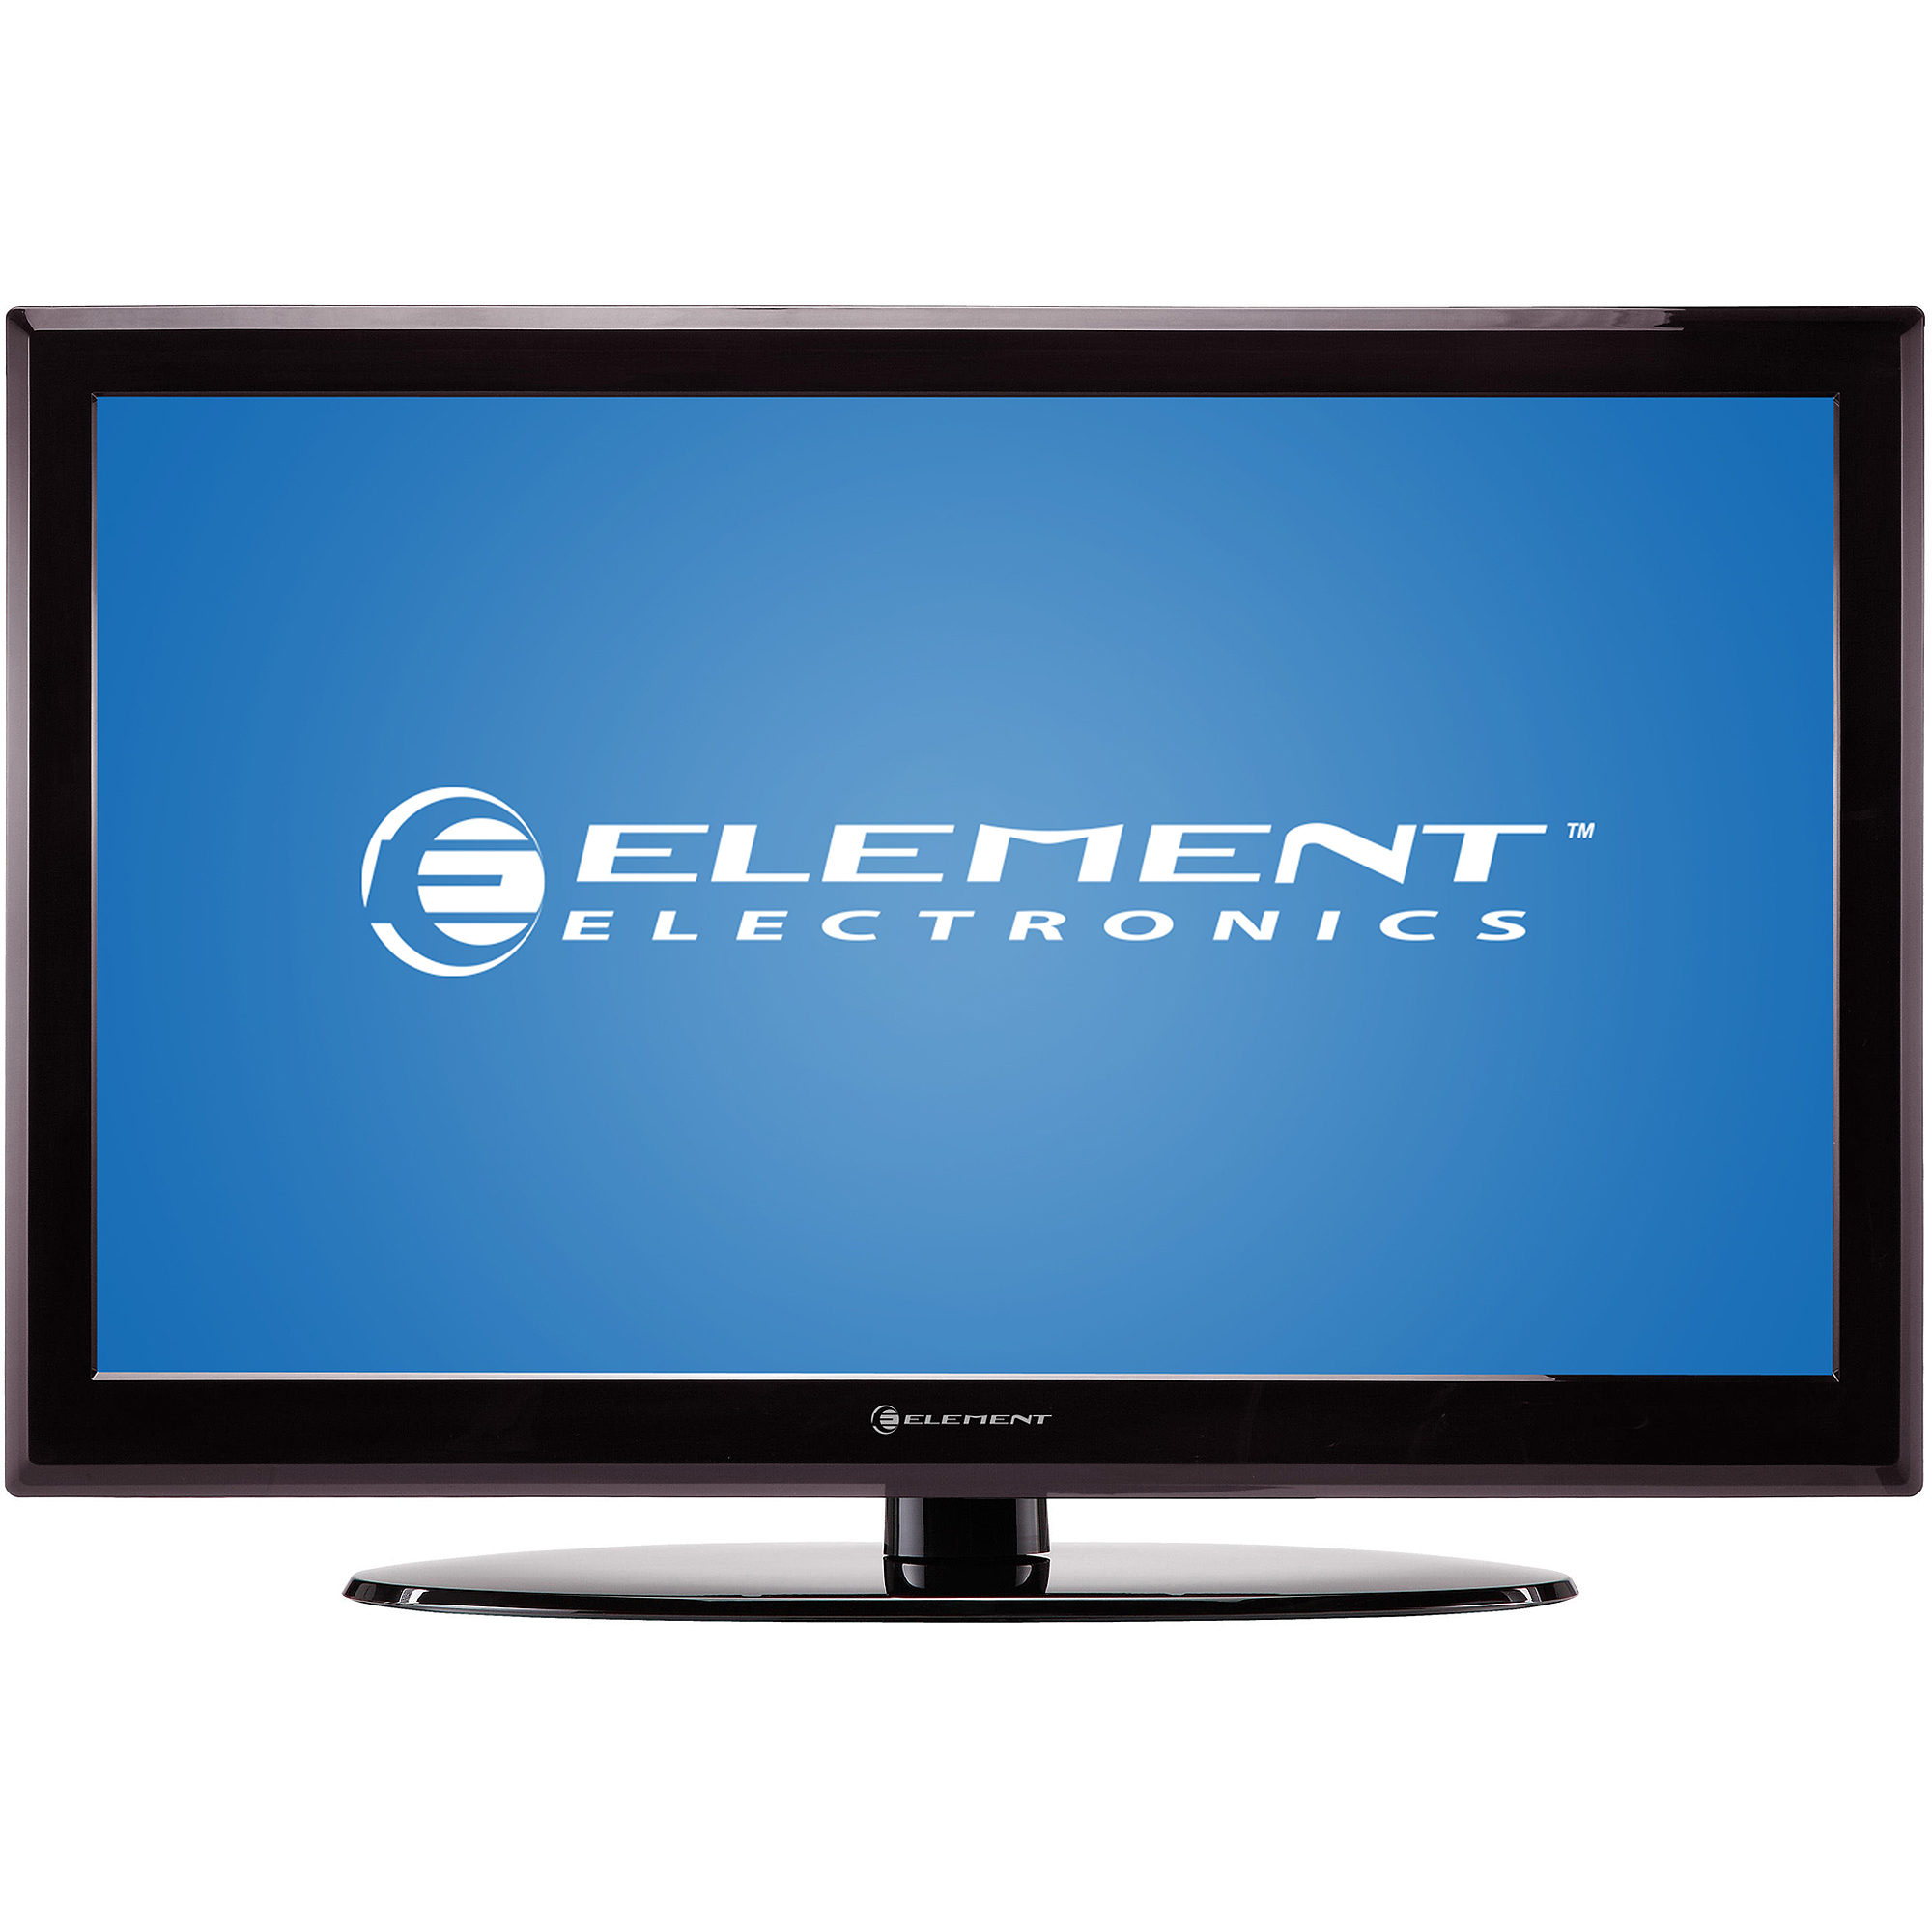 "Element ELDFW464 46"" Class LCD 1080p 60Hz HDTV, Refurbished"